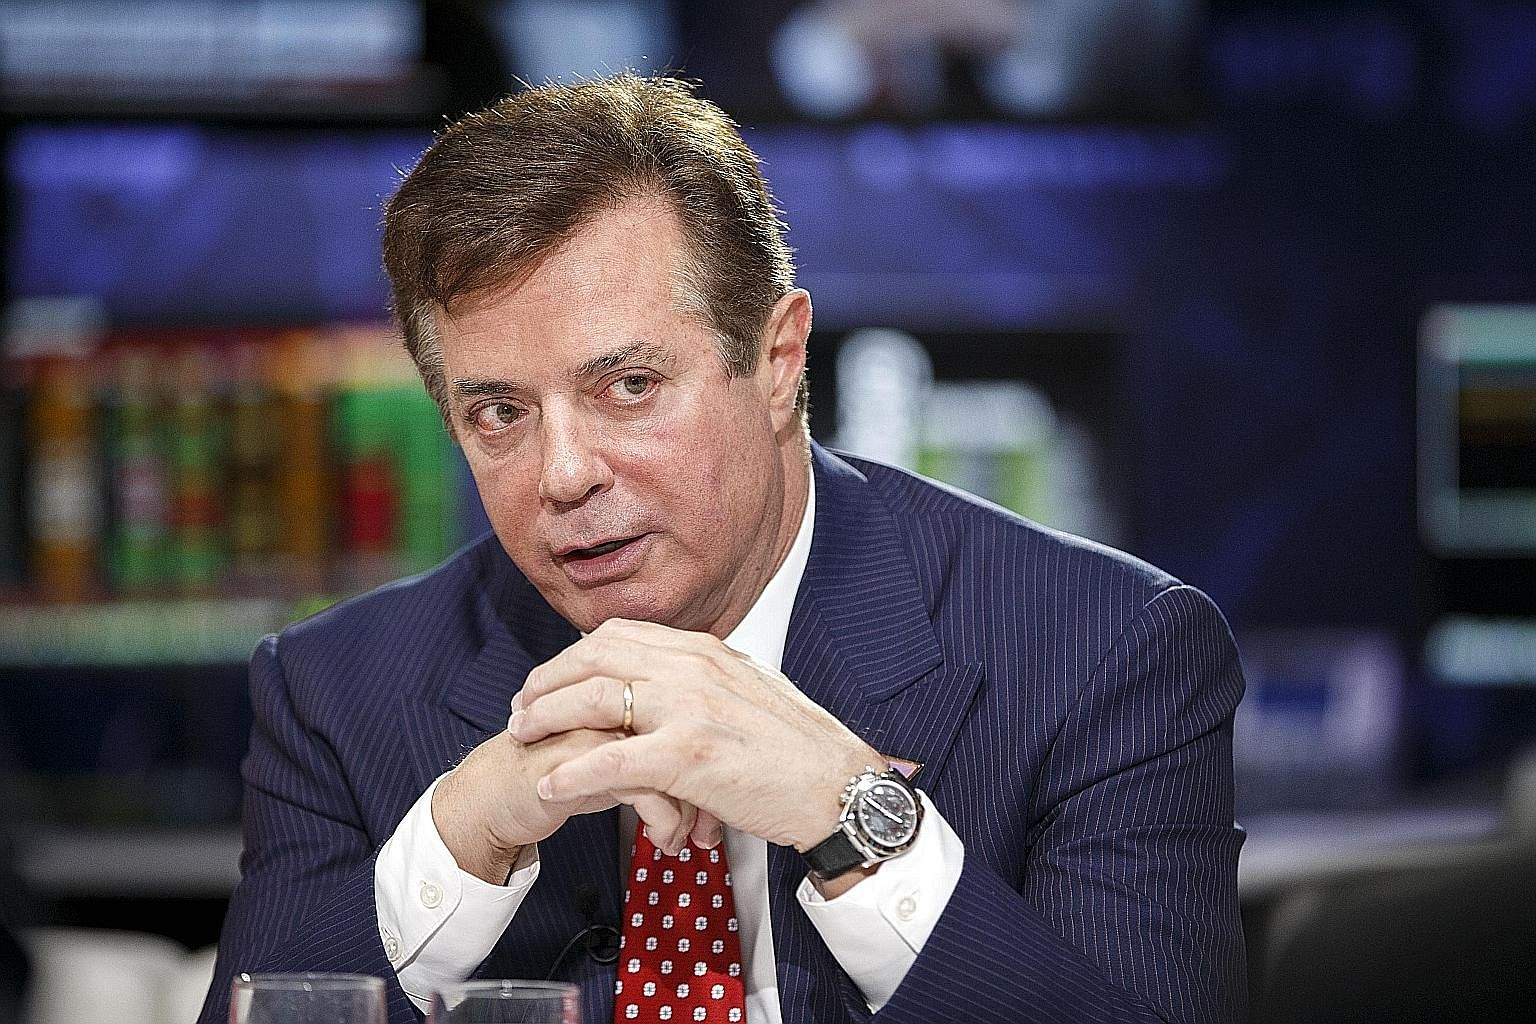 Mr Manafort helped Mr Trump secure the Republican nomination.